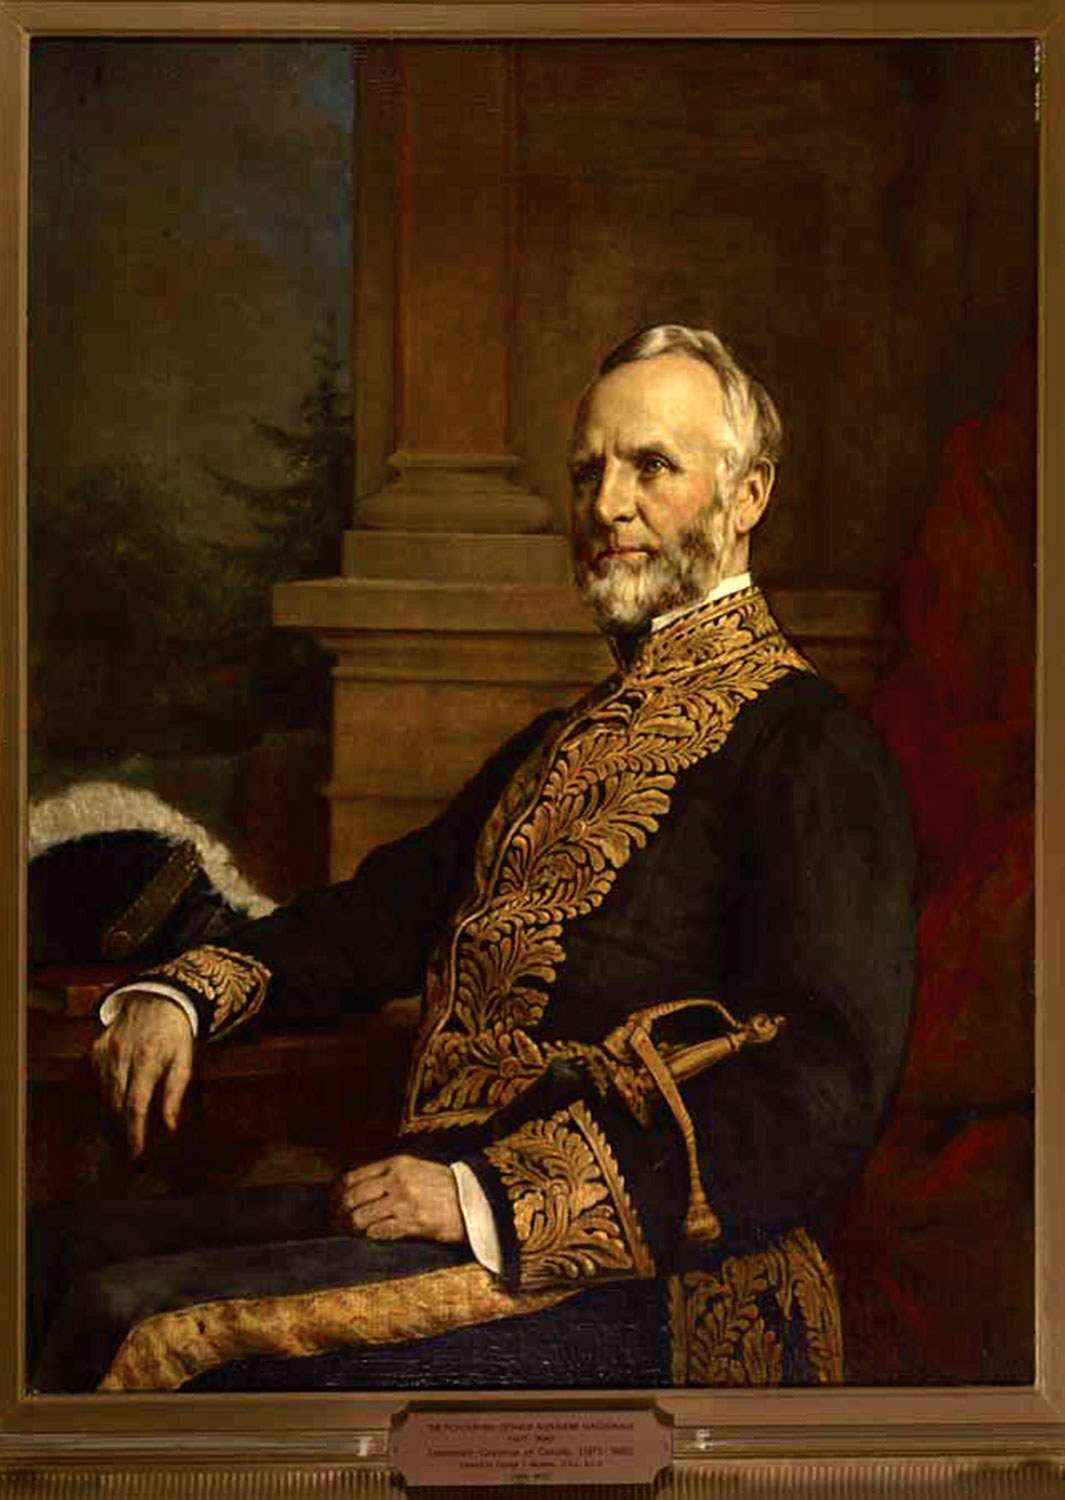 George Theodore Berthon, Hon. Donald Alexander Macdonald [Lieutenant Governor of Ontario, 1875-1880], oil on canvas, 109.2 x 81.3 cm. Government of Ontario Art Collection, 693132.